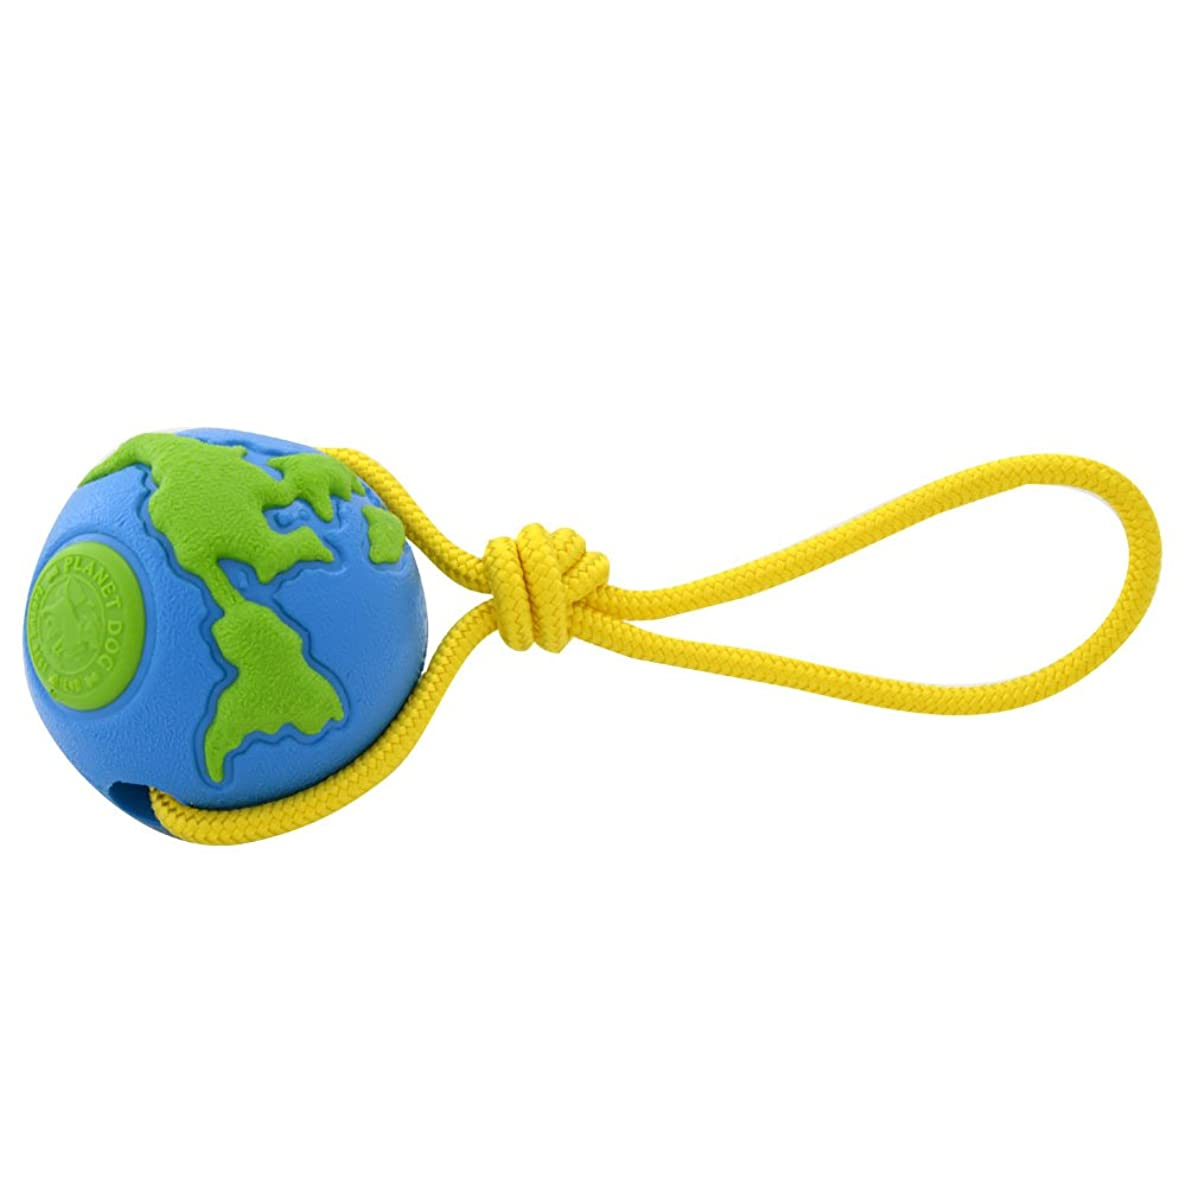 Planet Dog Orbee Ball, Planet Ball Rope Interactive Durable Chew-Fetch-Tug Dog Toy, Floats, Made in The USA, Blue Green